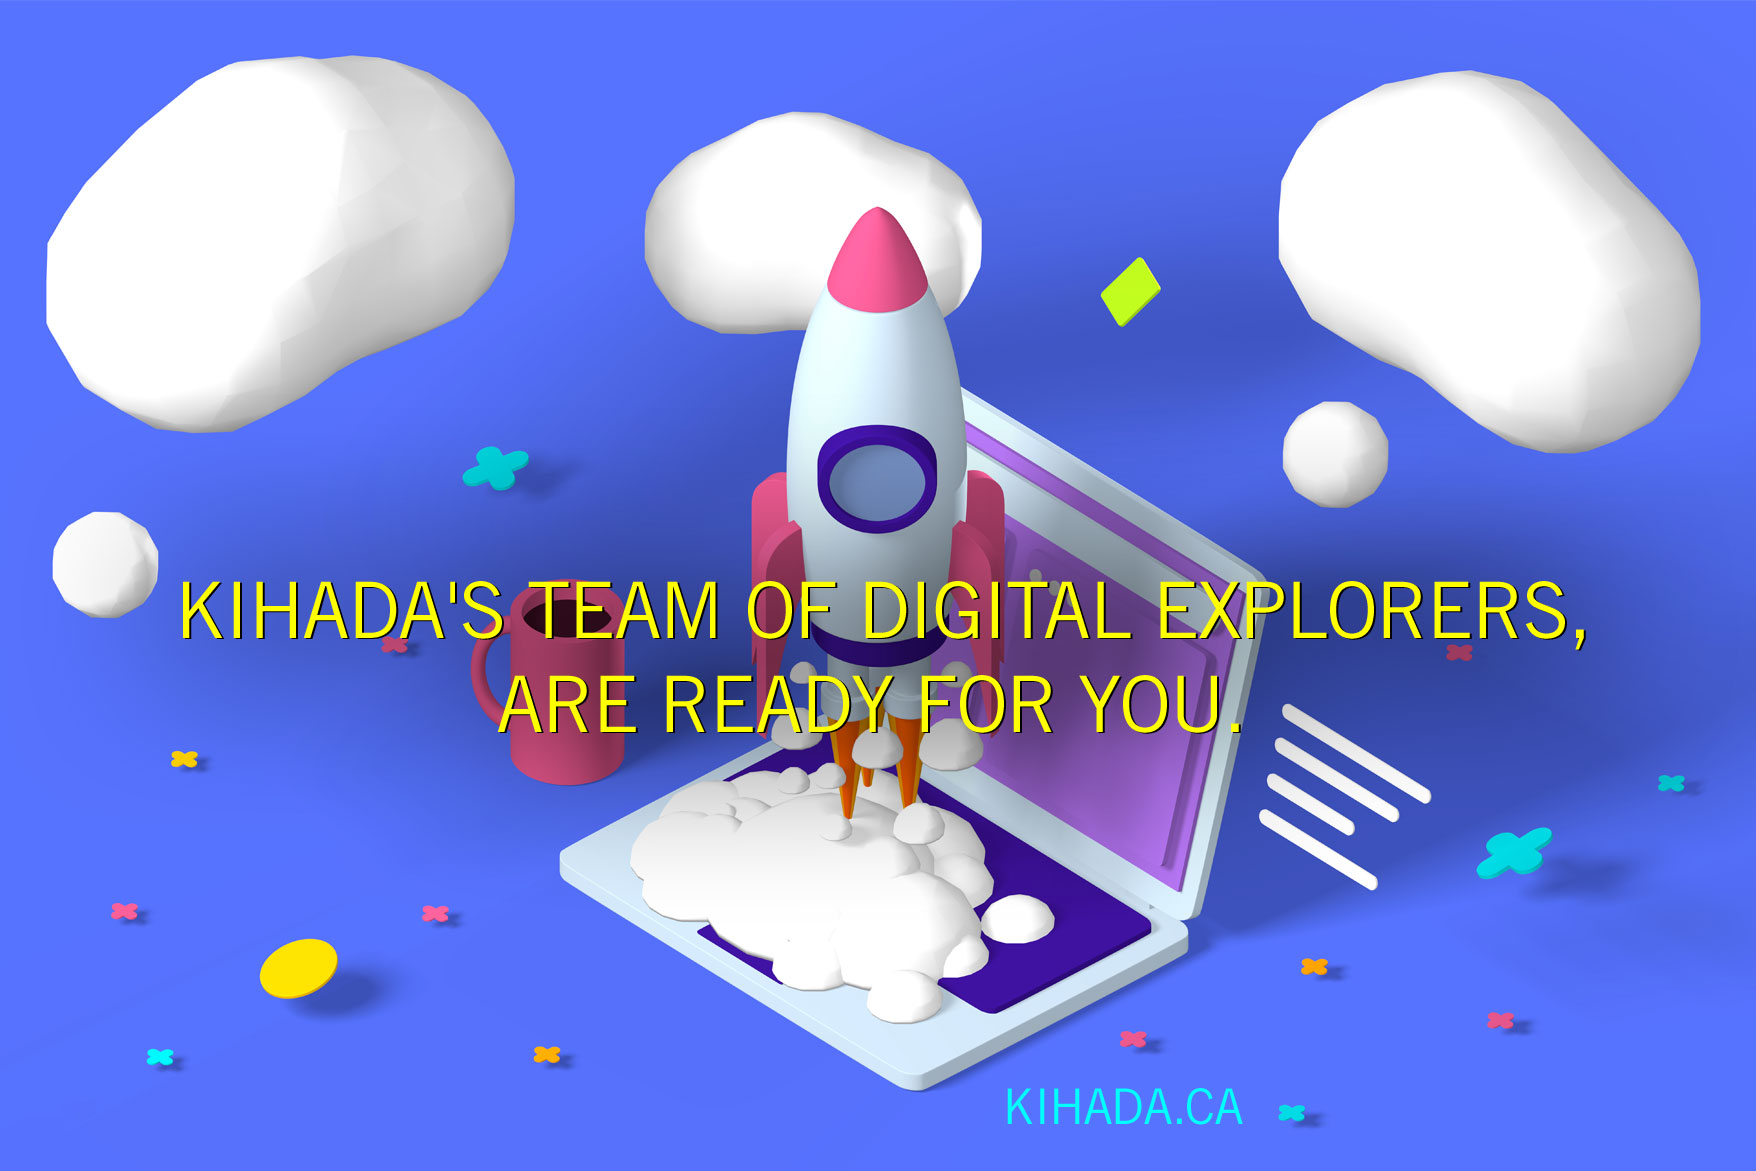 Kihada's Team Of Digital Explorers Are Ready For You